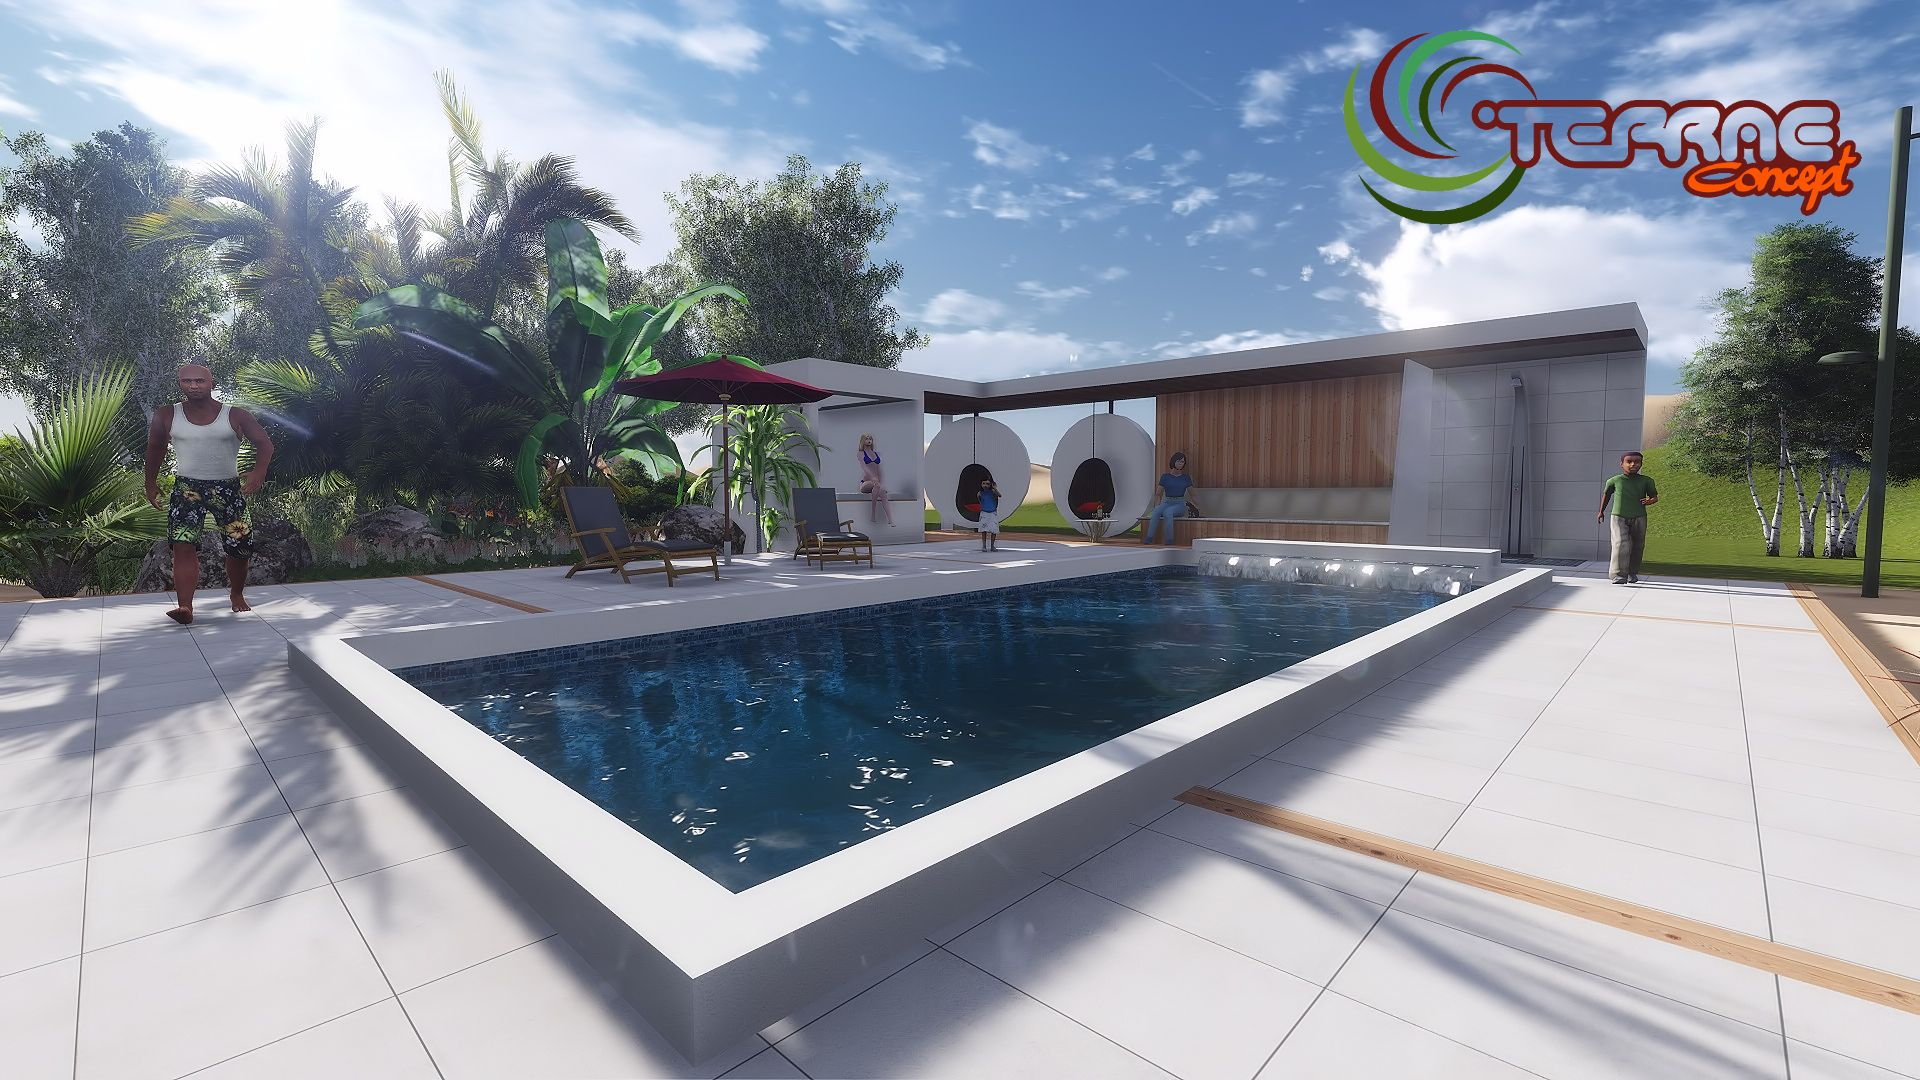 Image maison 3d permis de construire plan maison 3d agence for Construction pool house piscine